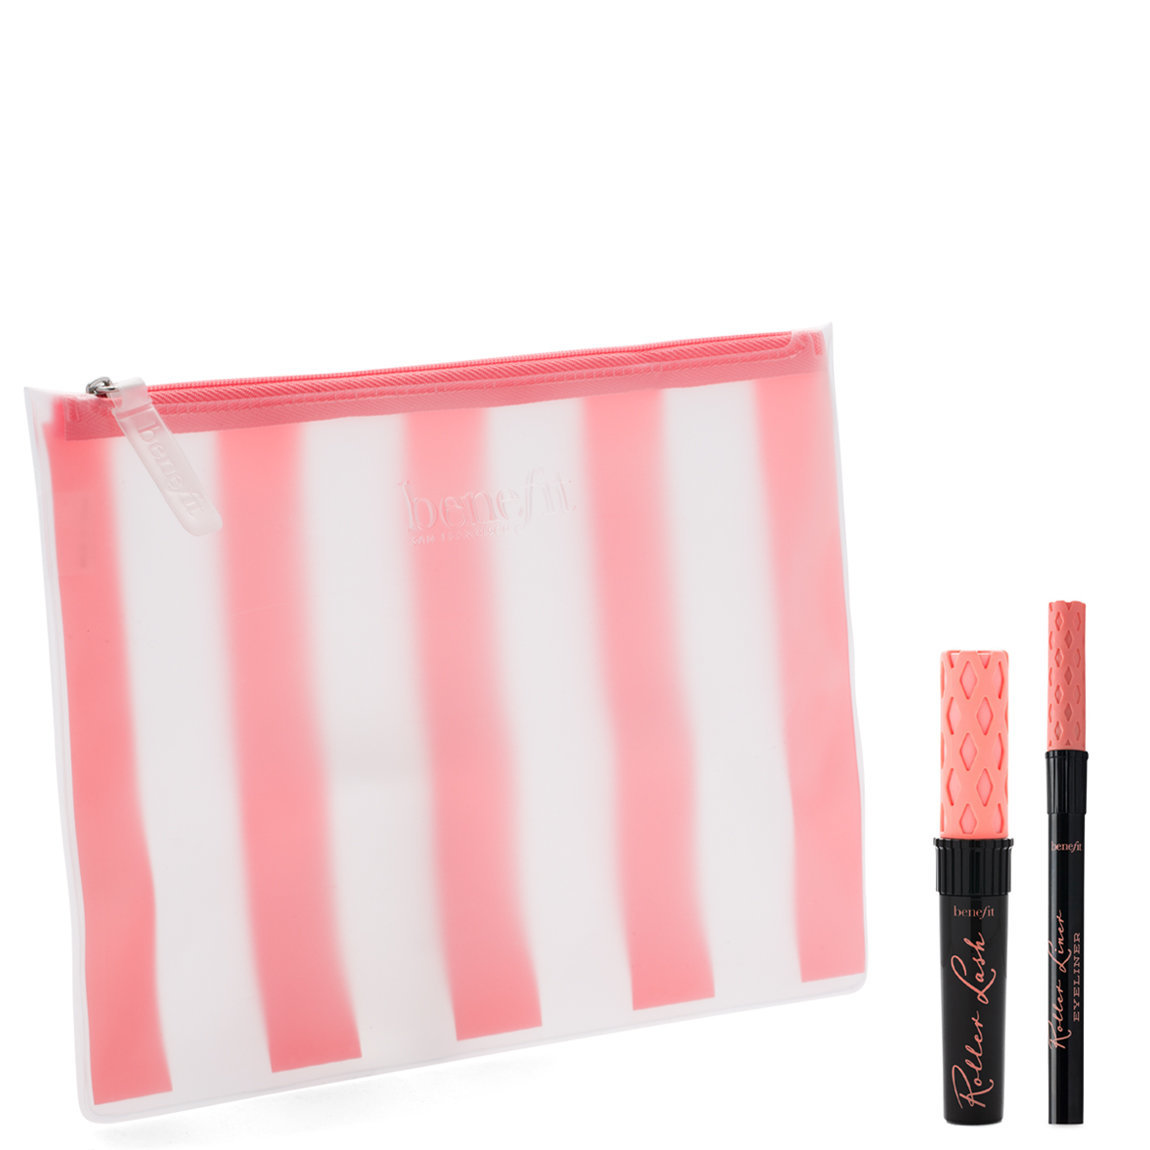 Benefit Cosmetics Lash & Line-up Mascara & Eyeliner Set product smear.